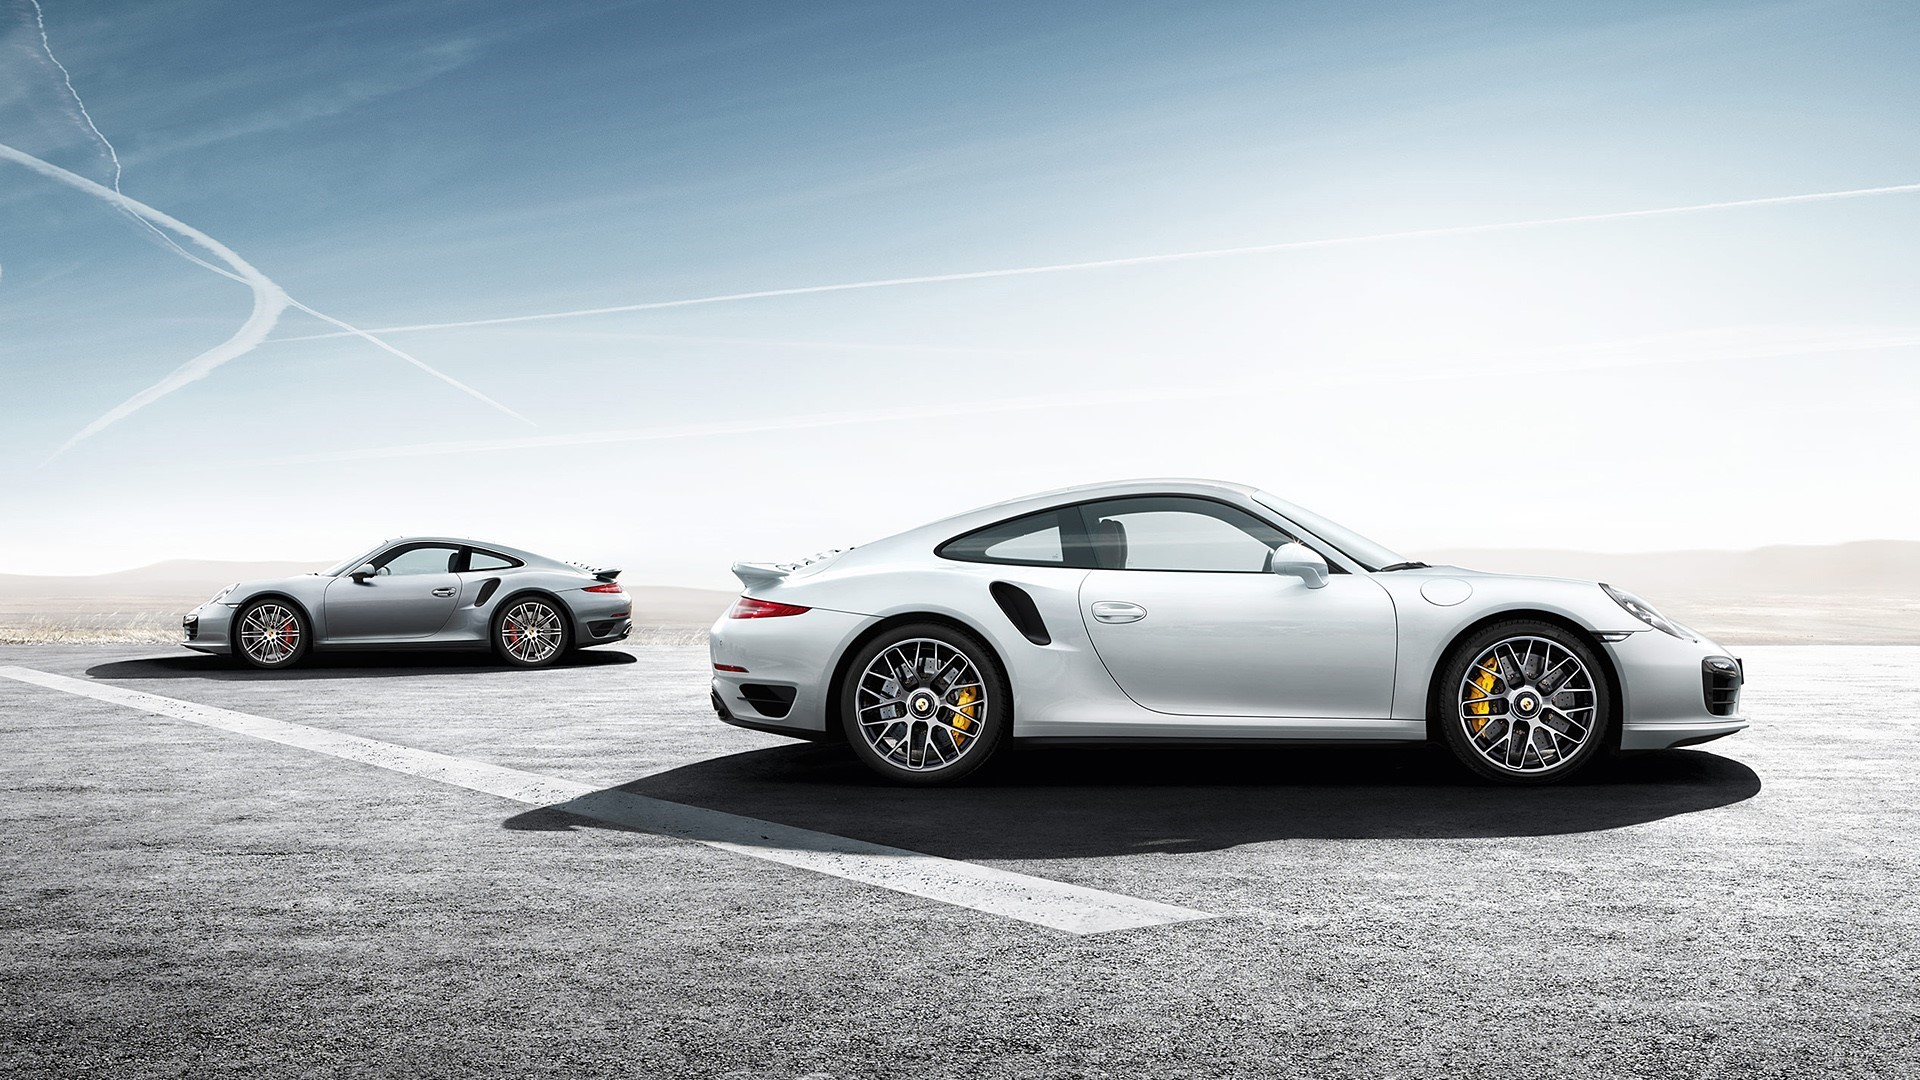 Porsche 911 Turbo Free Wallpaper